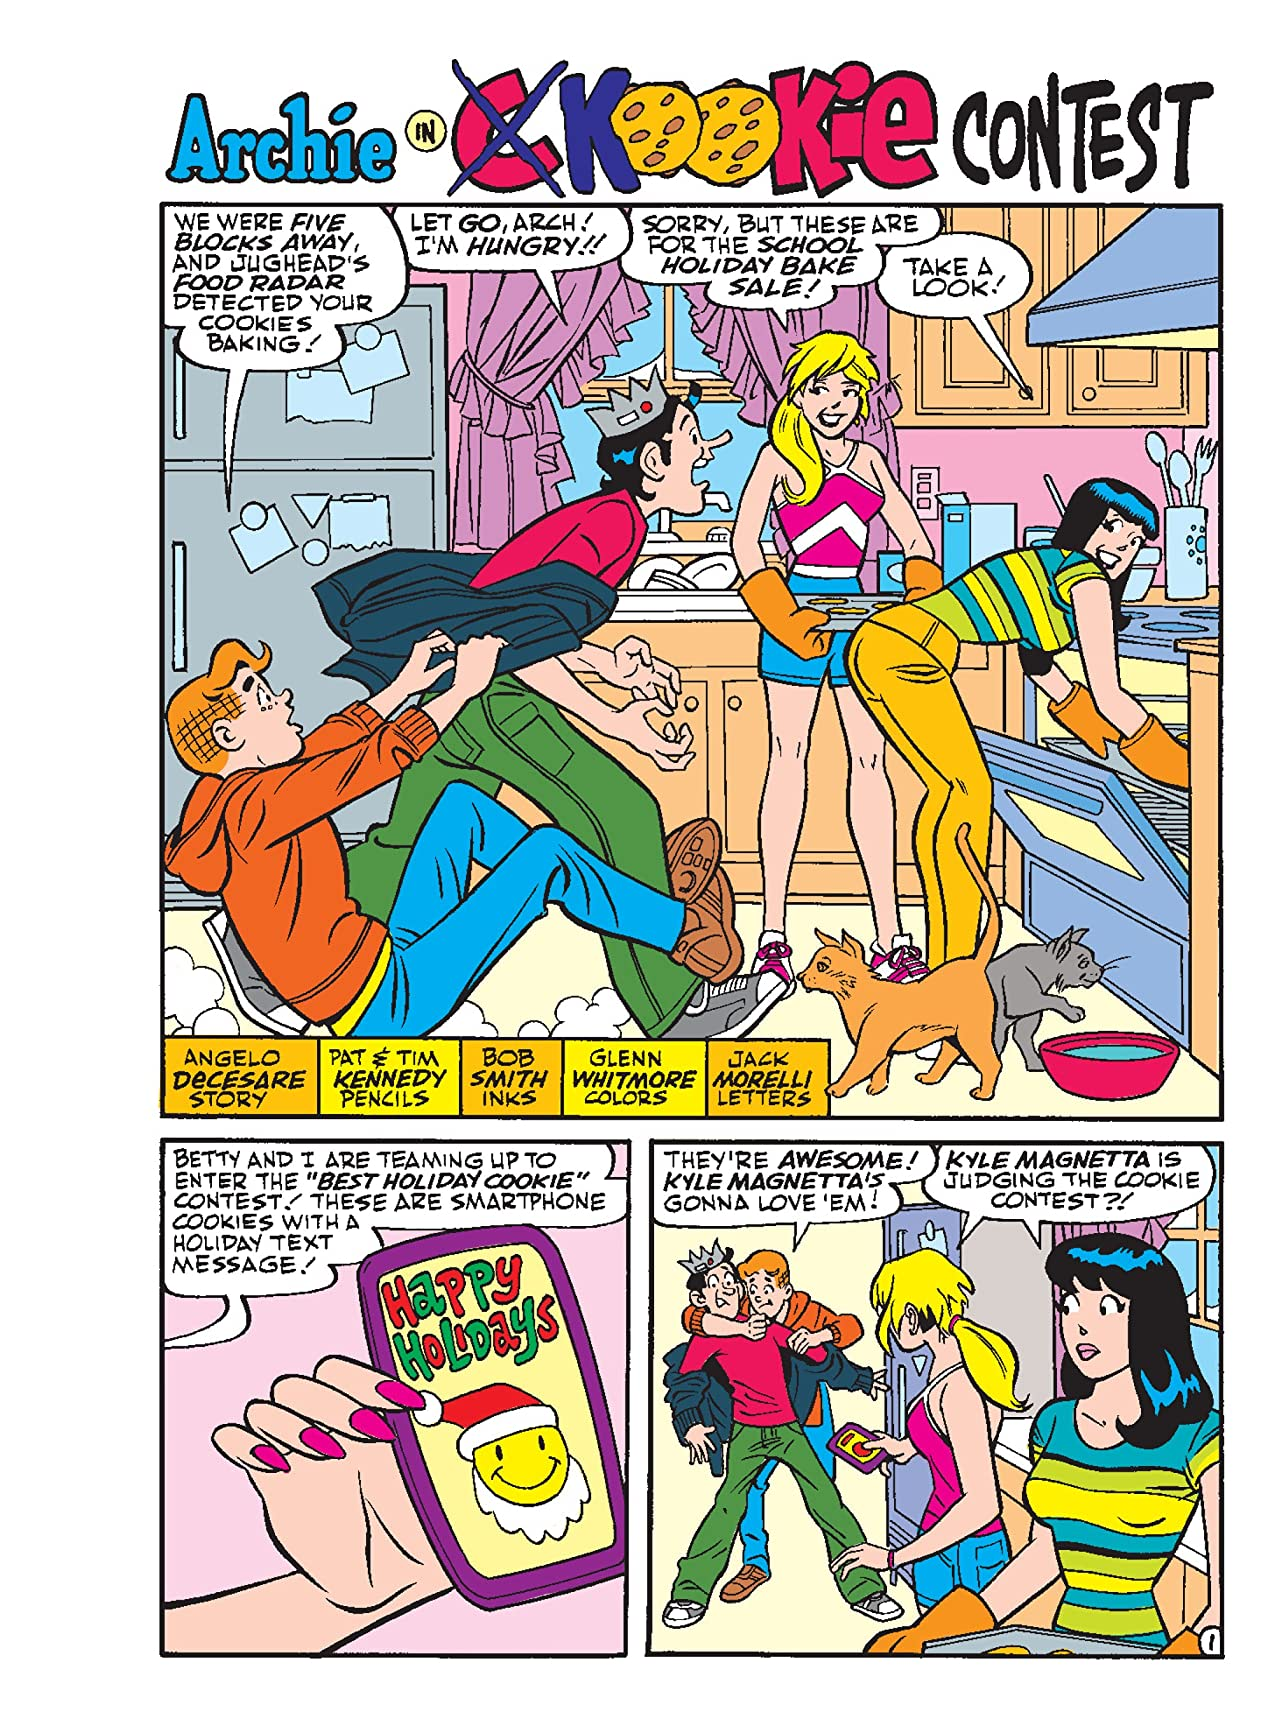 World of Archie Double Digest #83